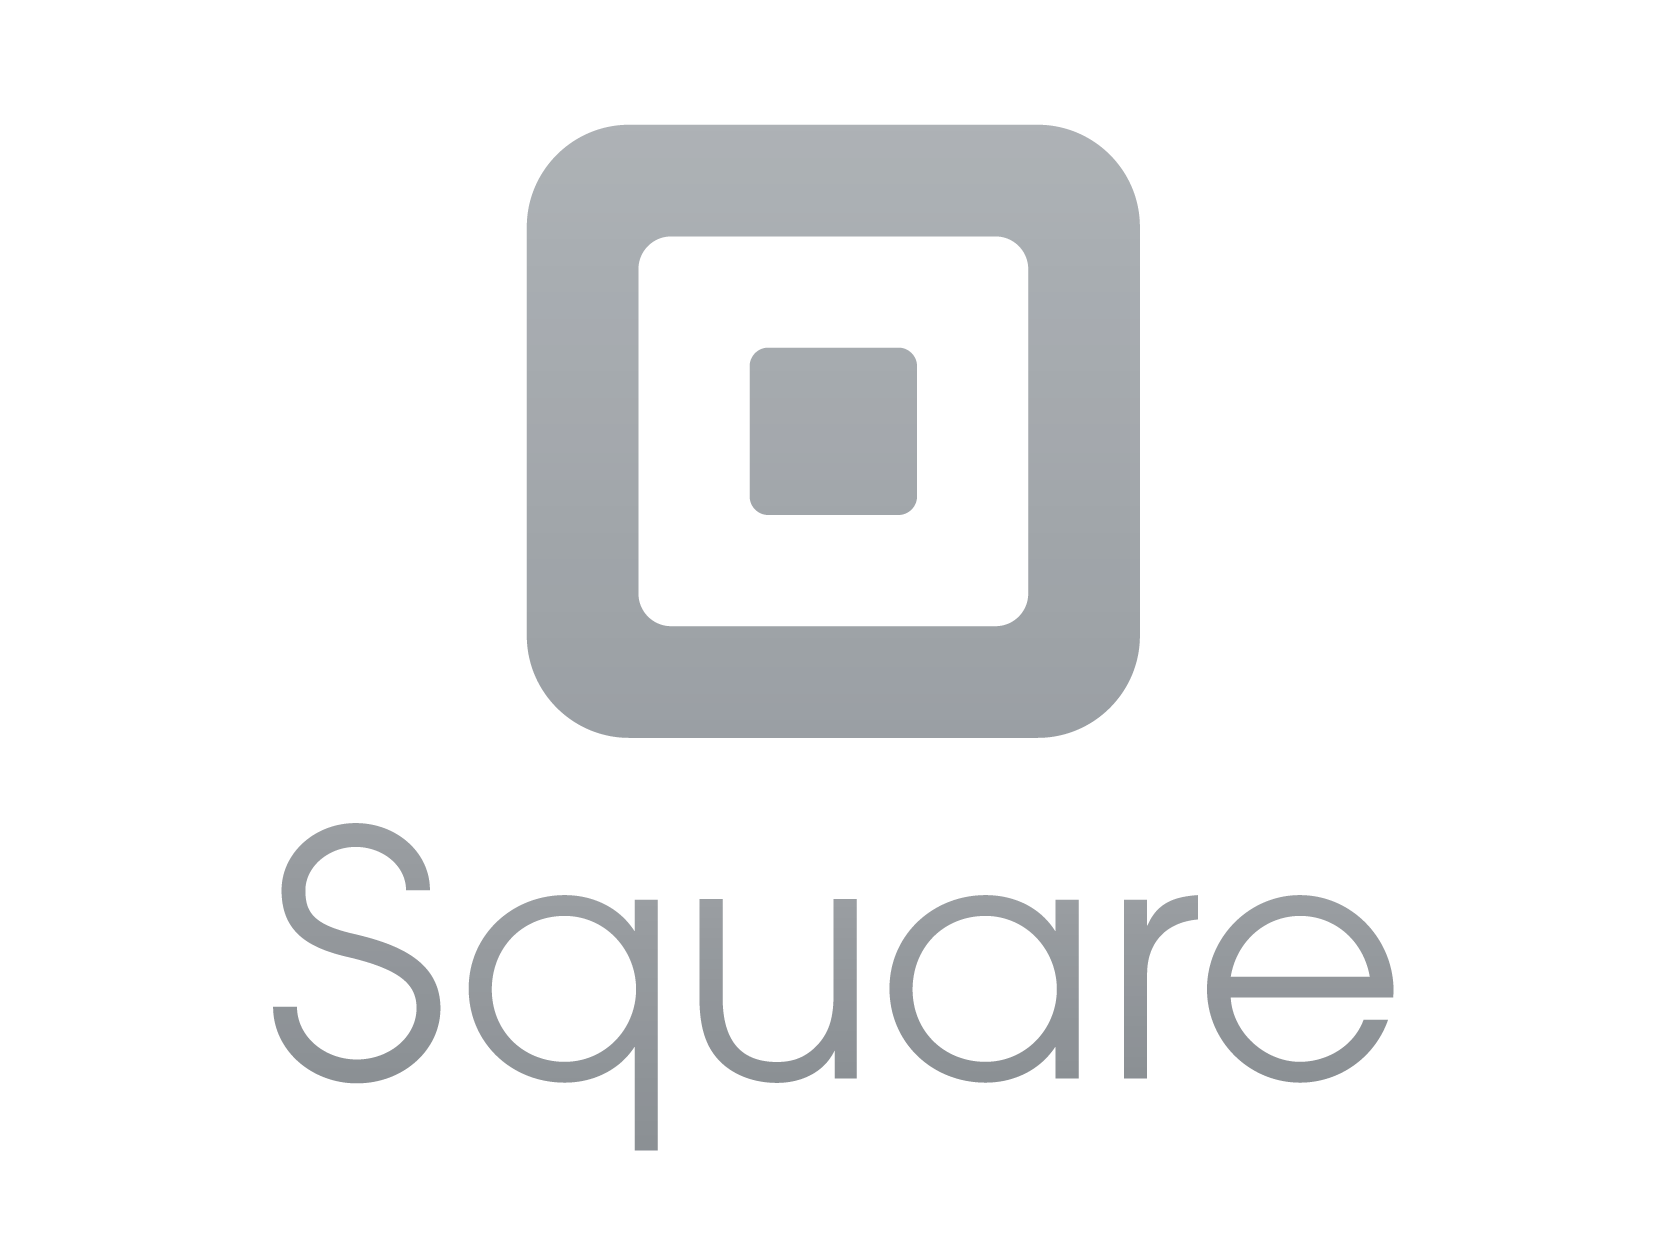 Square is revolutionizing the mobile payment market. | Technology ...